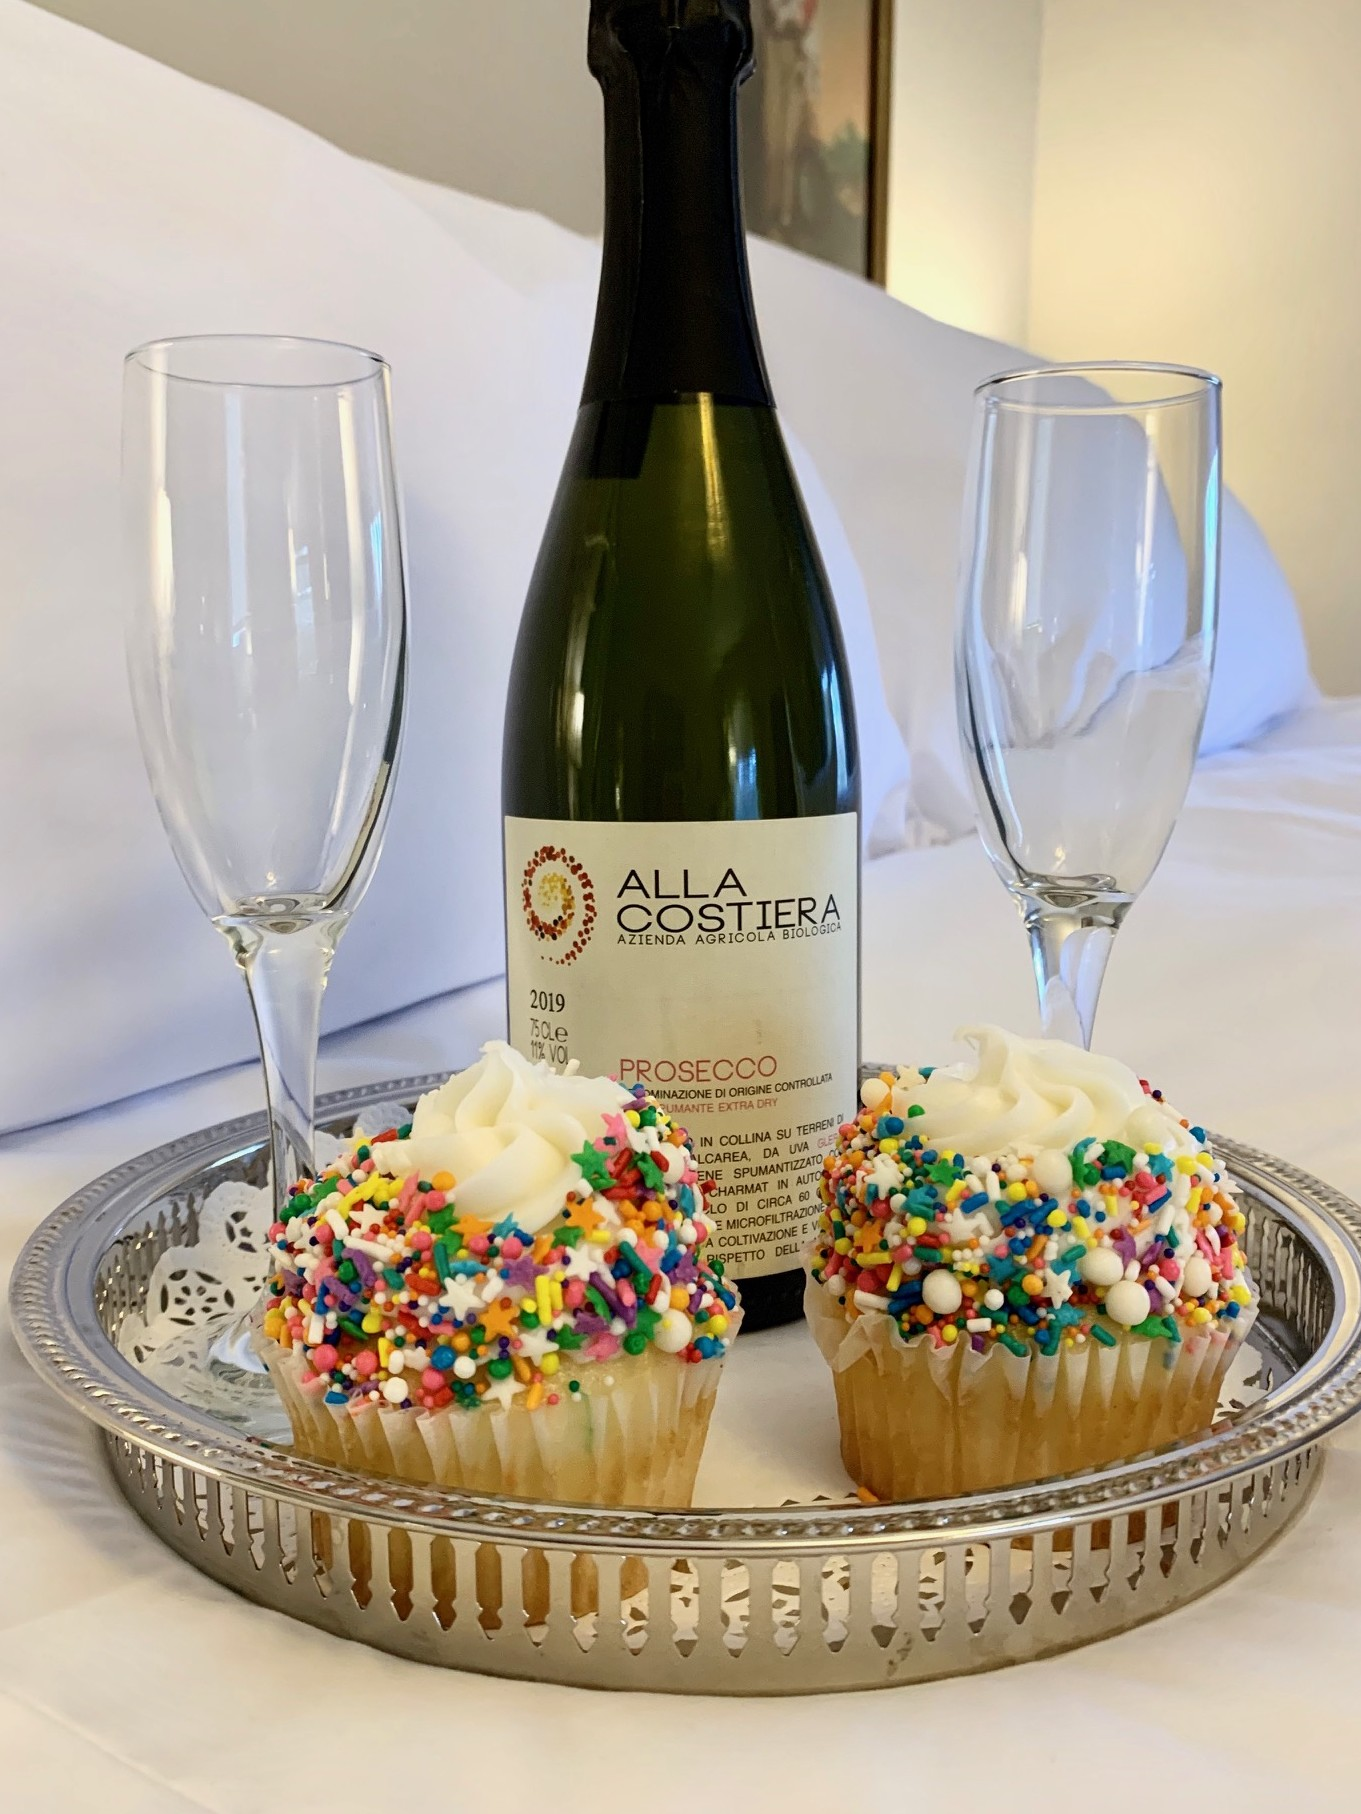 tray with bottle of prosecco, glasses, and 2 birthday cupcakes on a bed